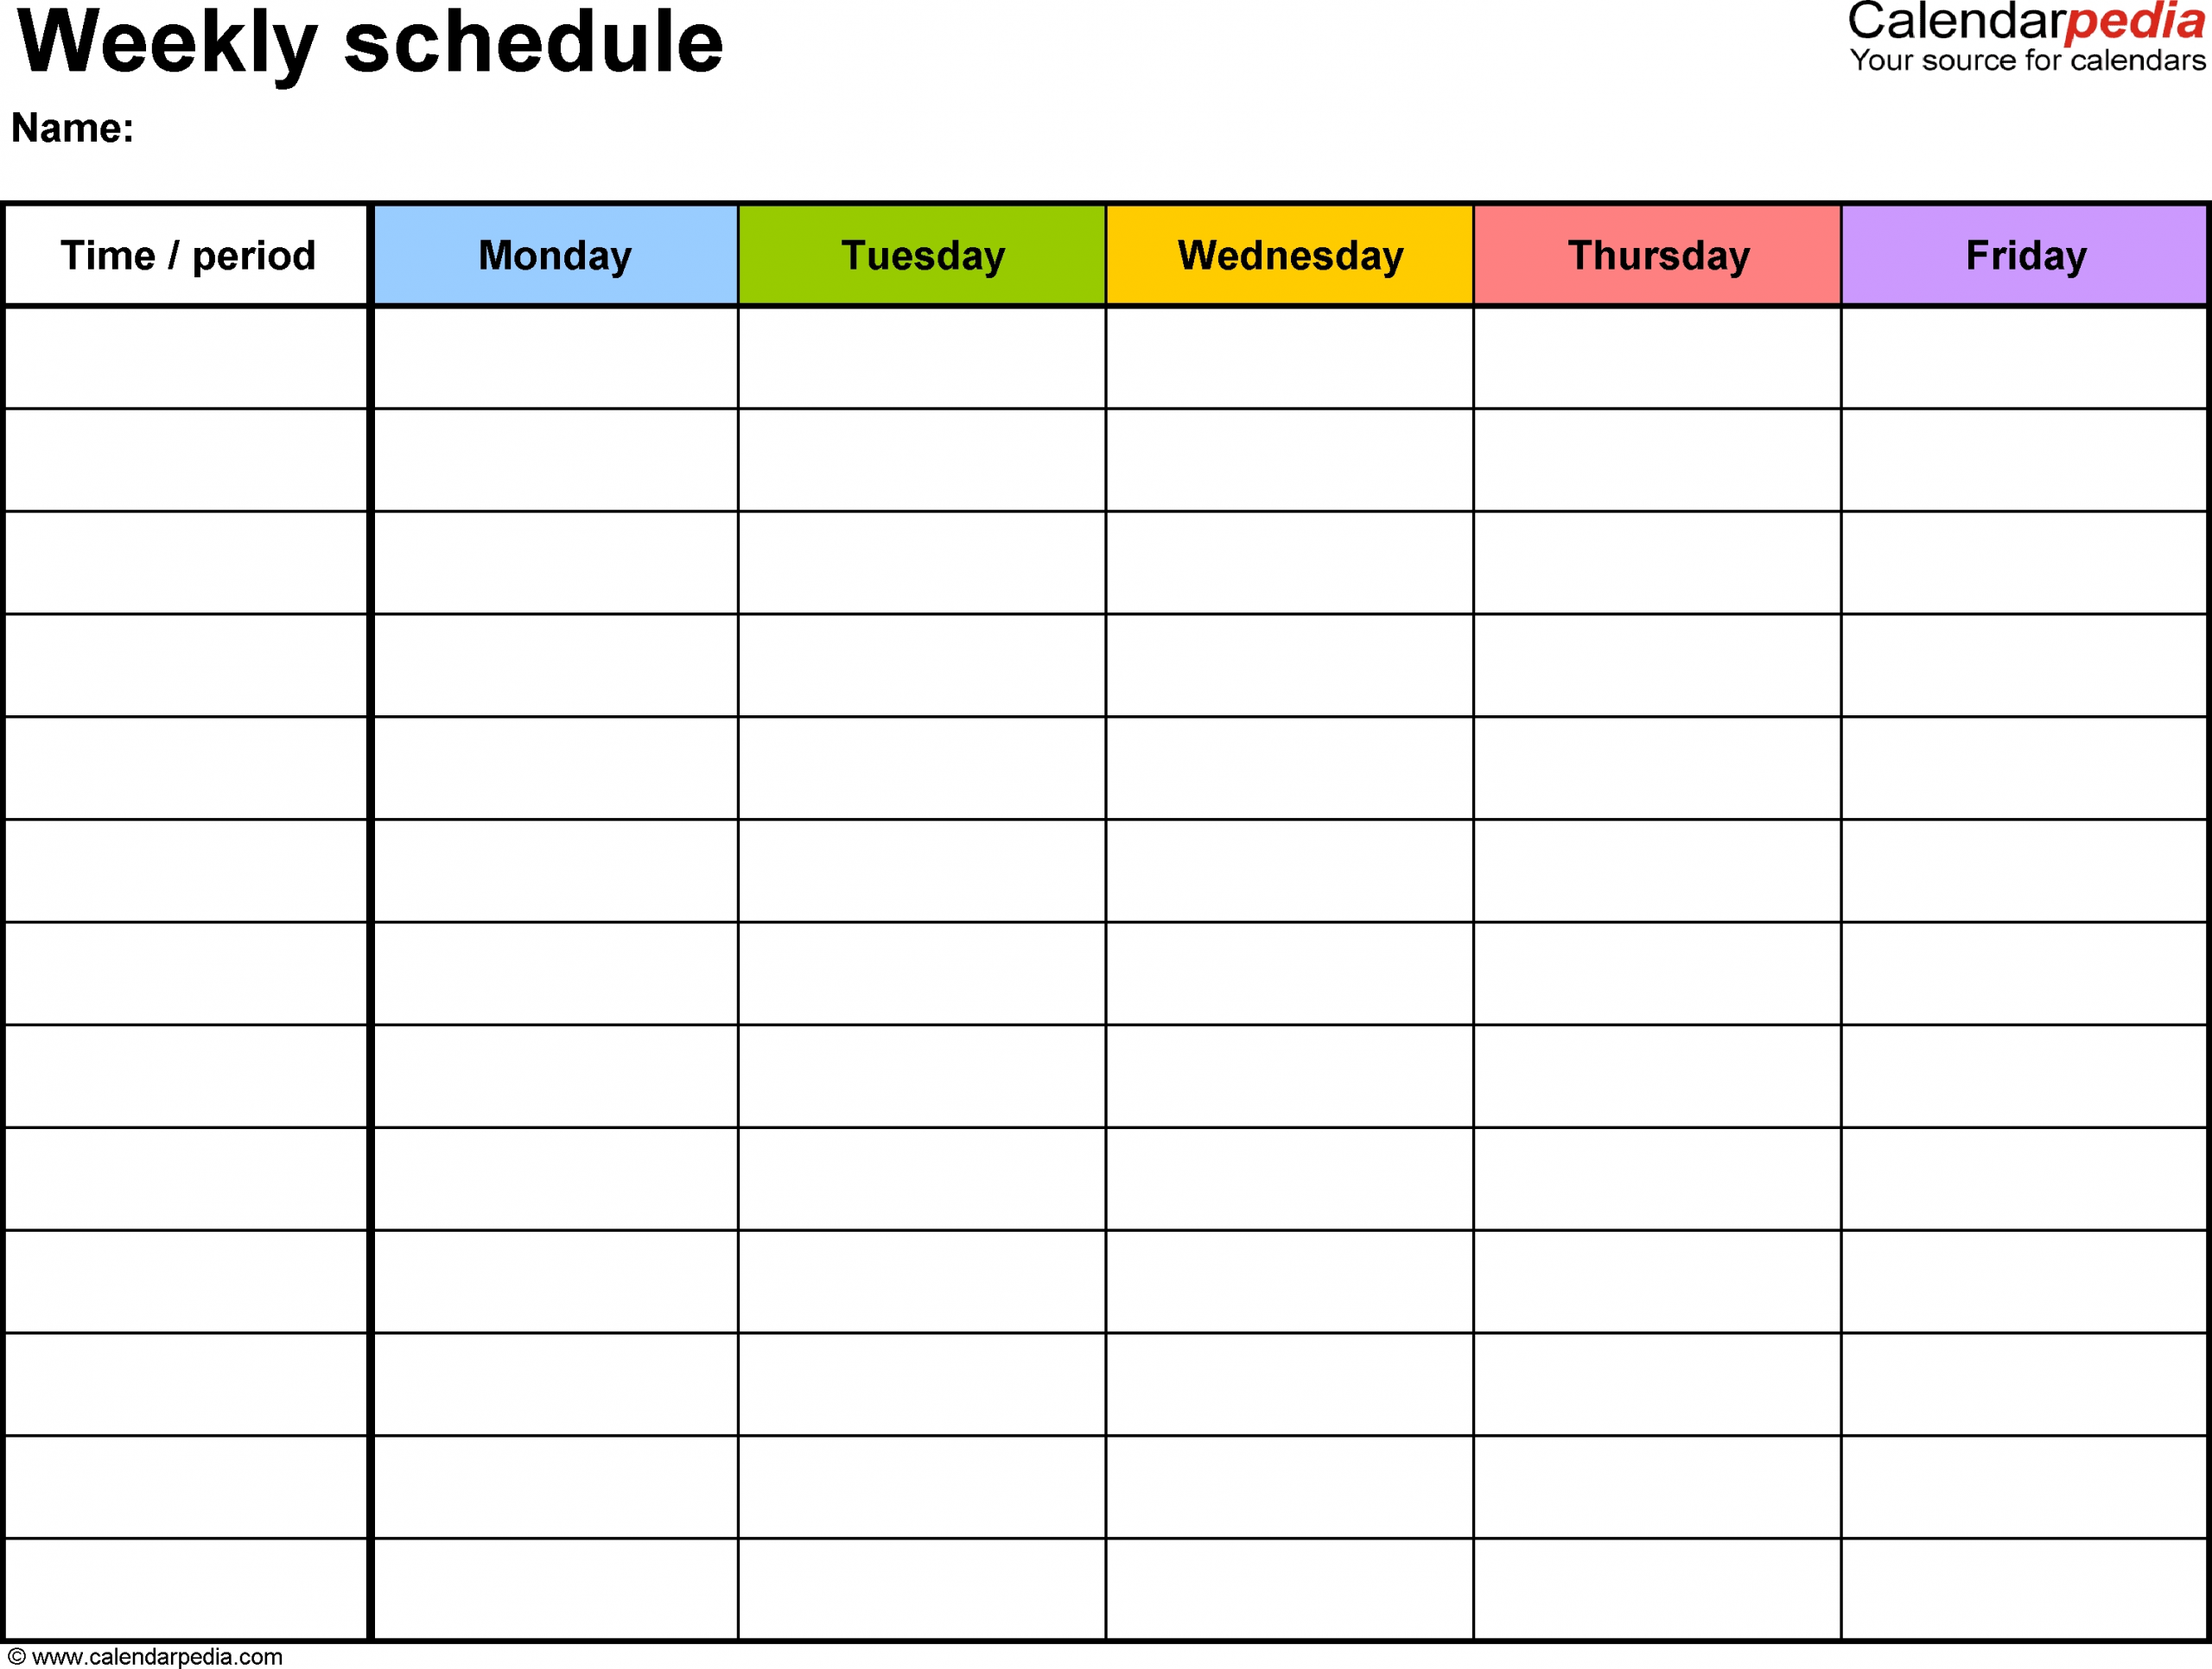 Monday To Friday Planner Template - Calendar Inspiration Mon - Fri Calender Layout Download